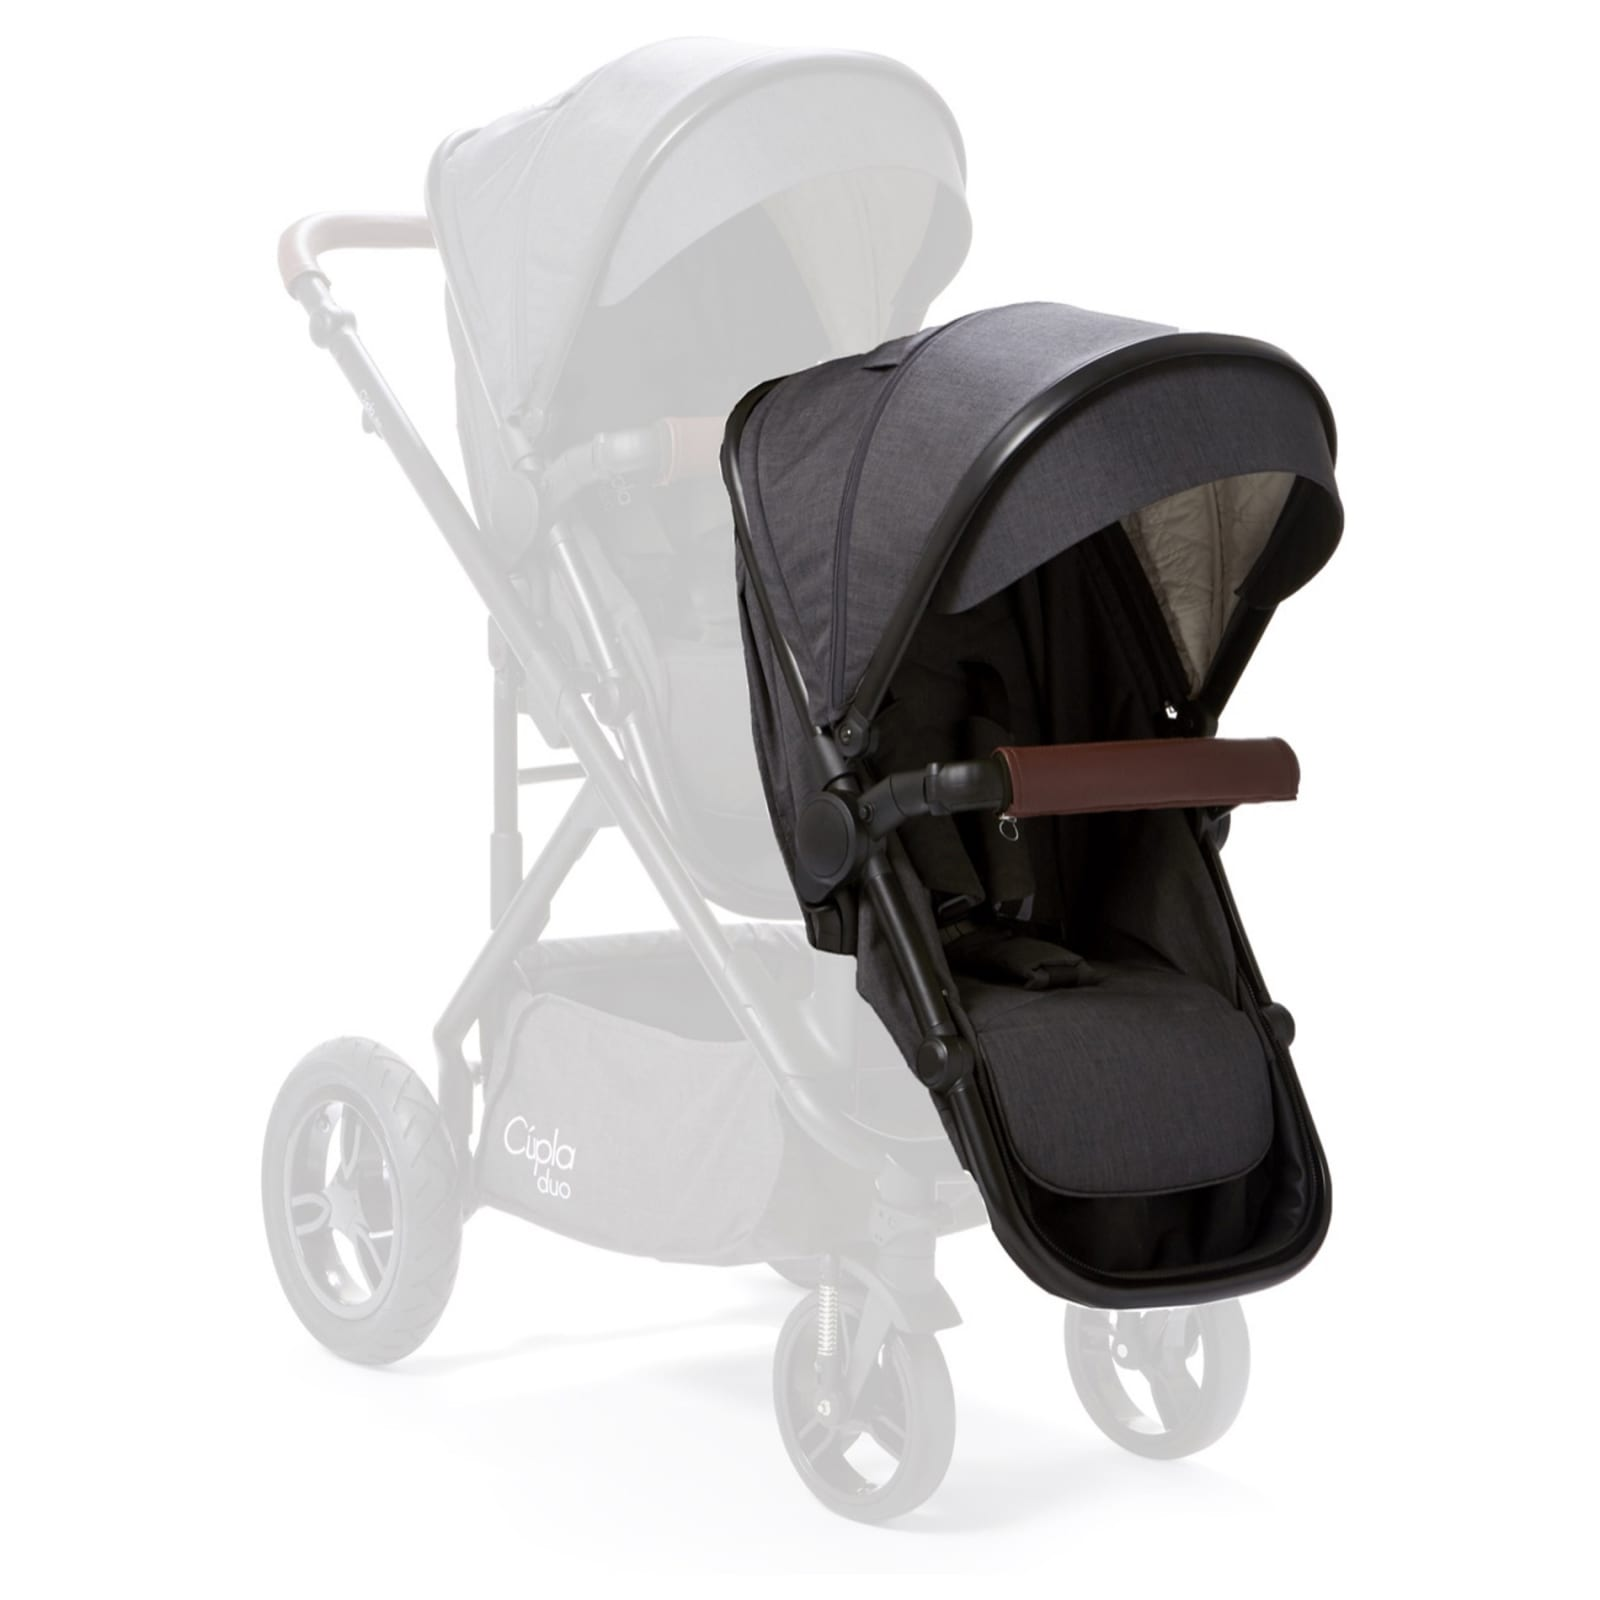 Cupla Duo Second Seat – Black Edition product image